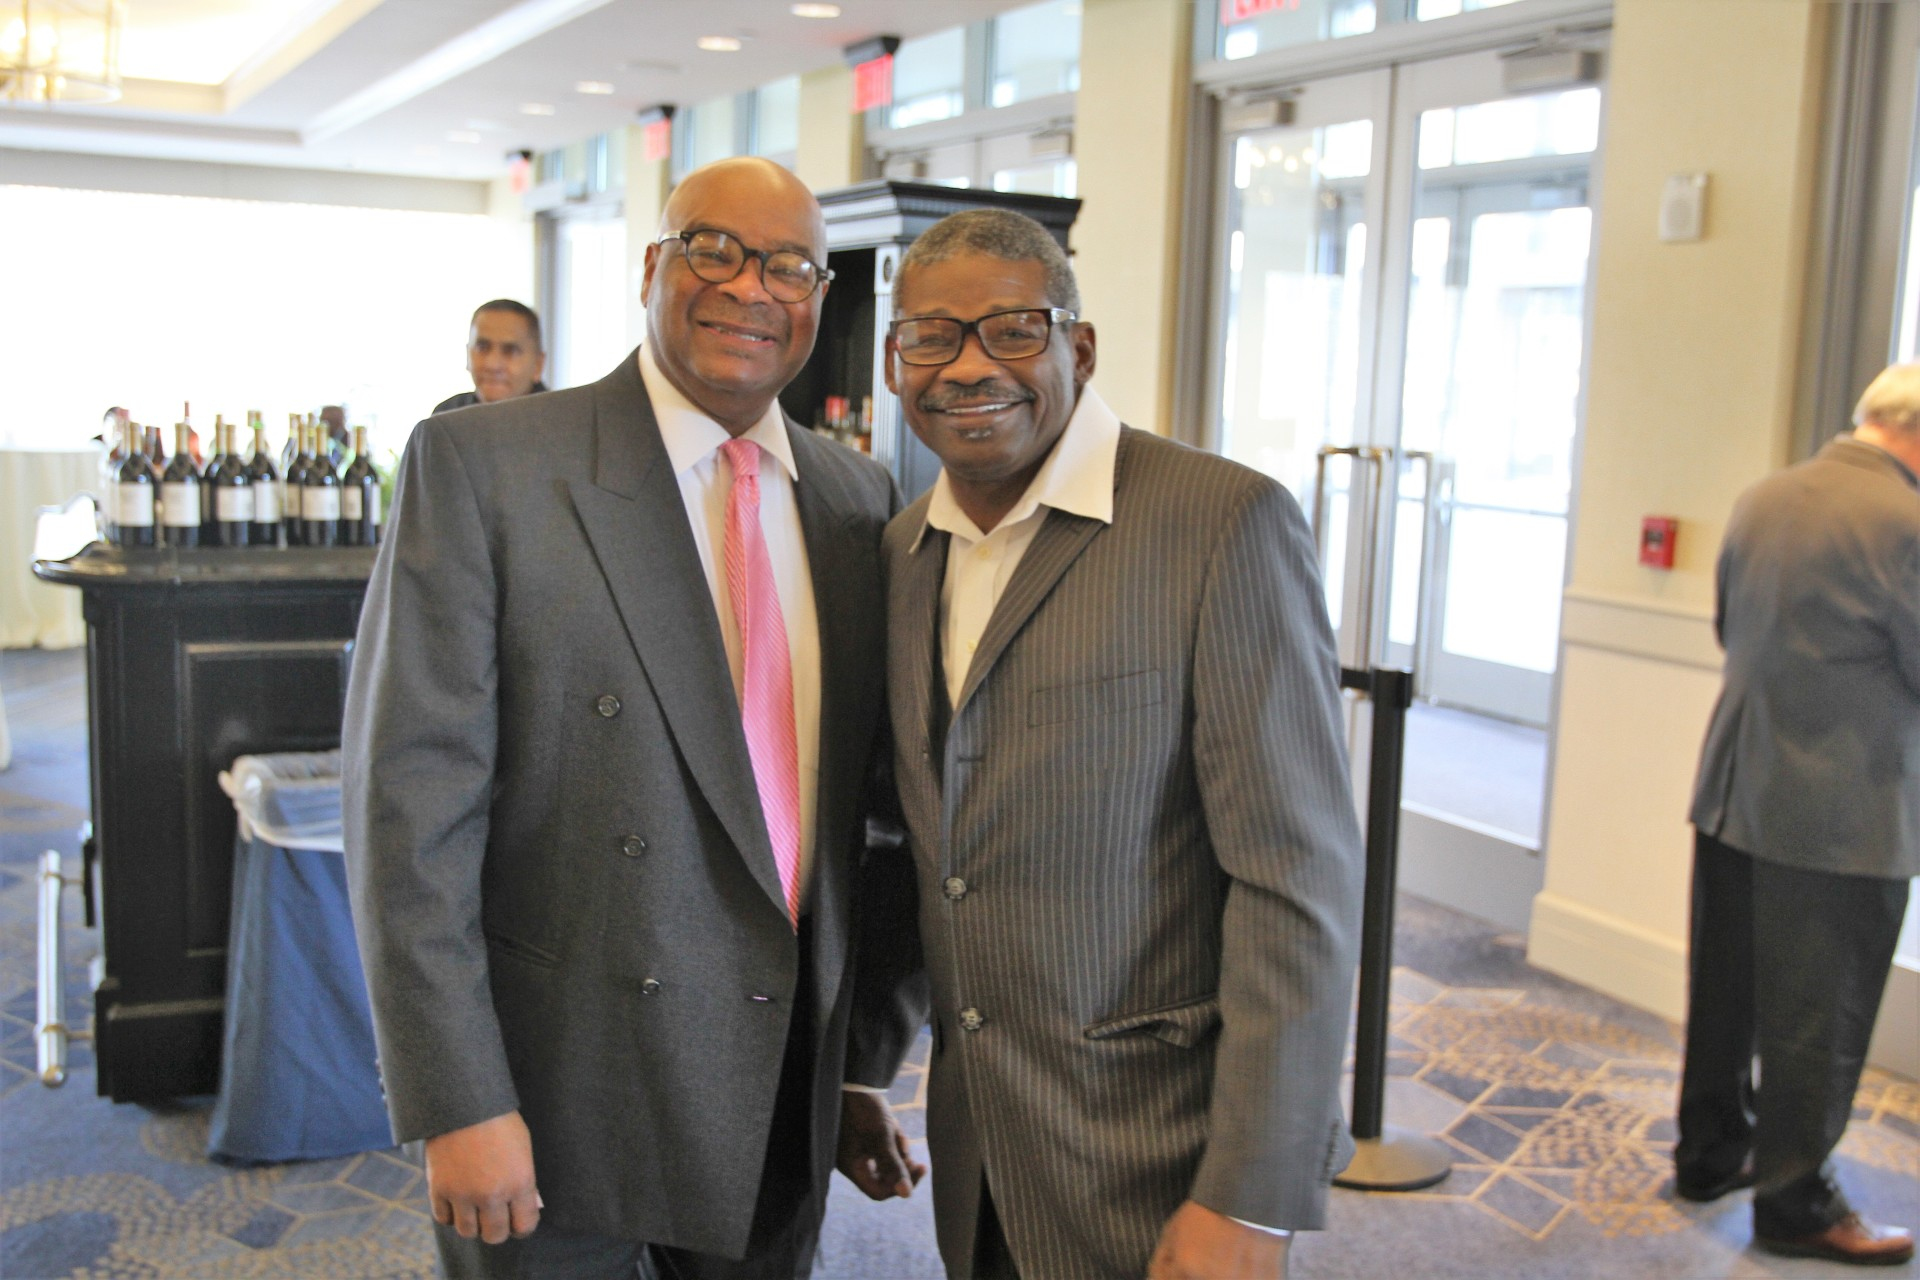 Gerrall Lewis and Marlon Starling